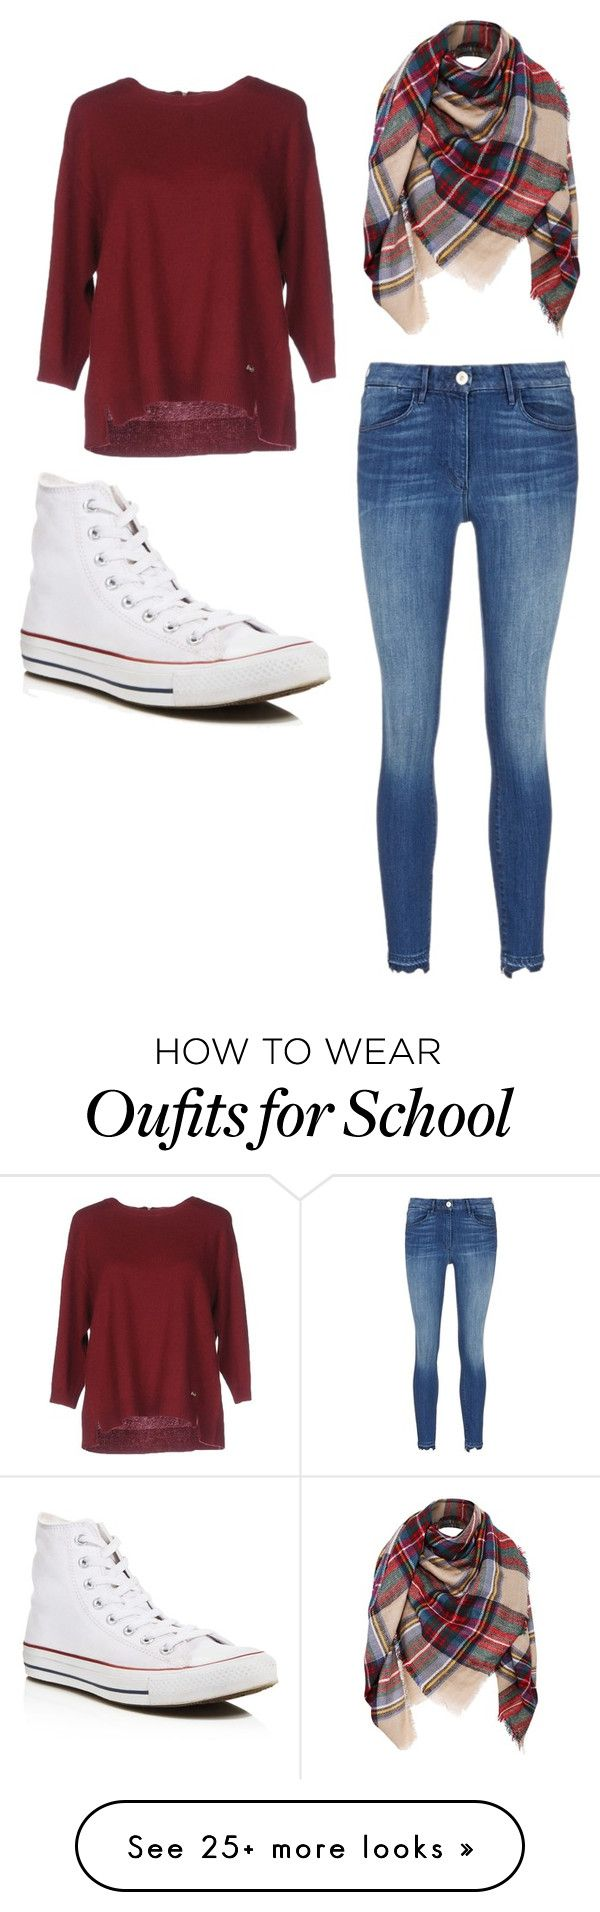 """""""School"""" by mrsbieber123-396 on Polyvore featuring Henry Cotton's and Converse"""